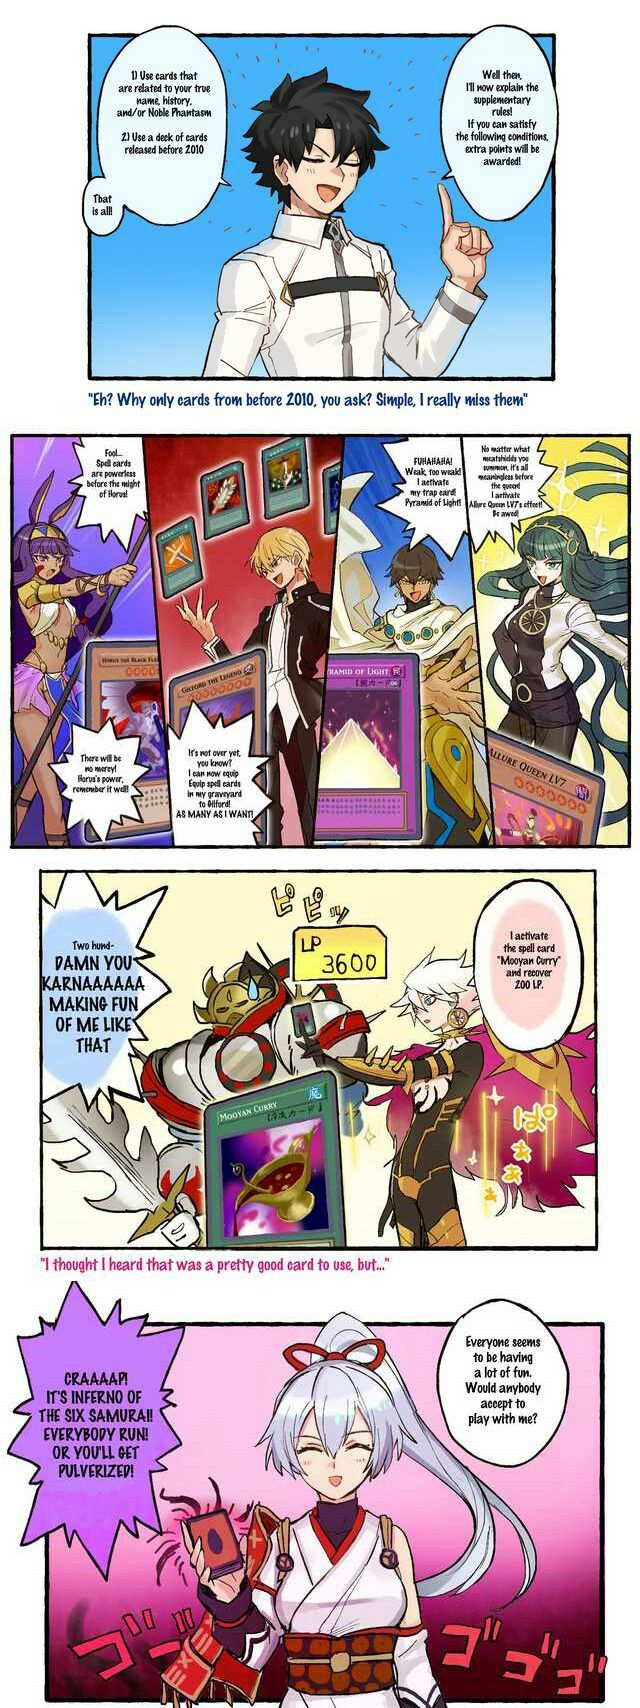 2010 Cards Yugioh tbh Fate anime series, Fate stay night